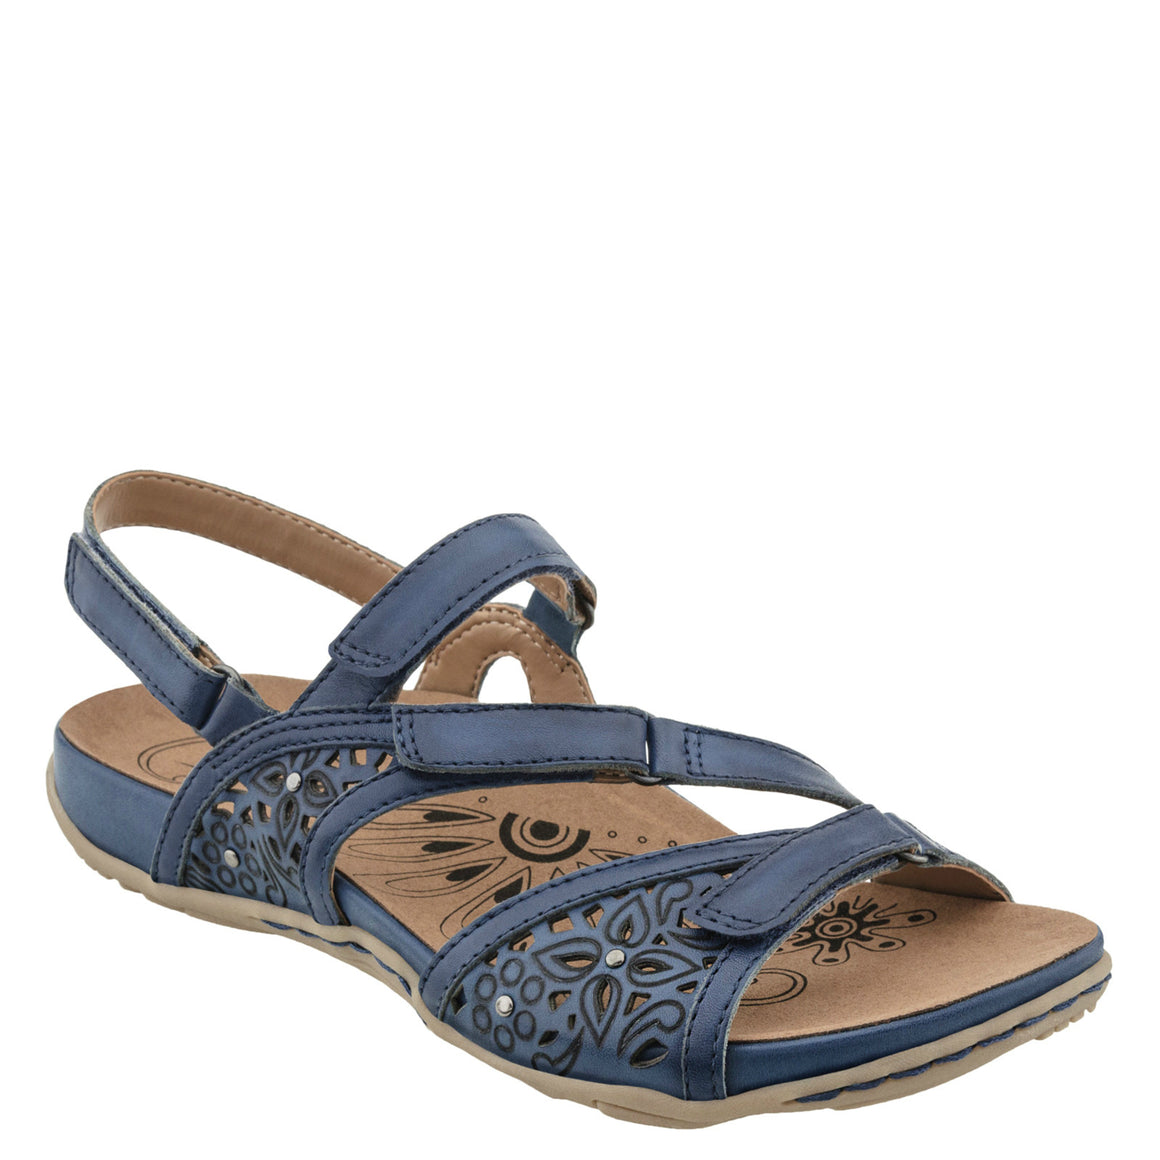 Earth Women's Maui Cutout Floral Sandal - Parisian Blue 601792WLEA